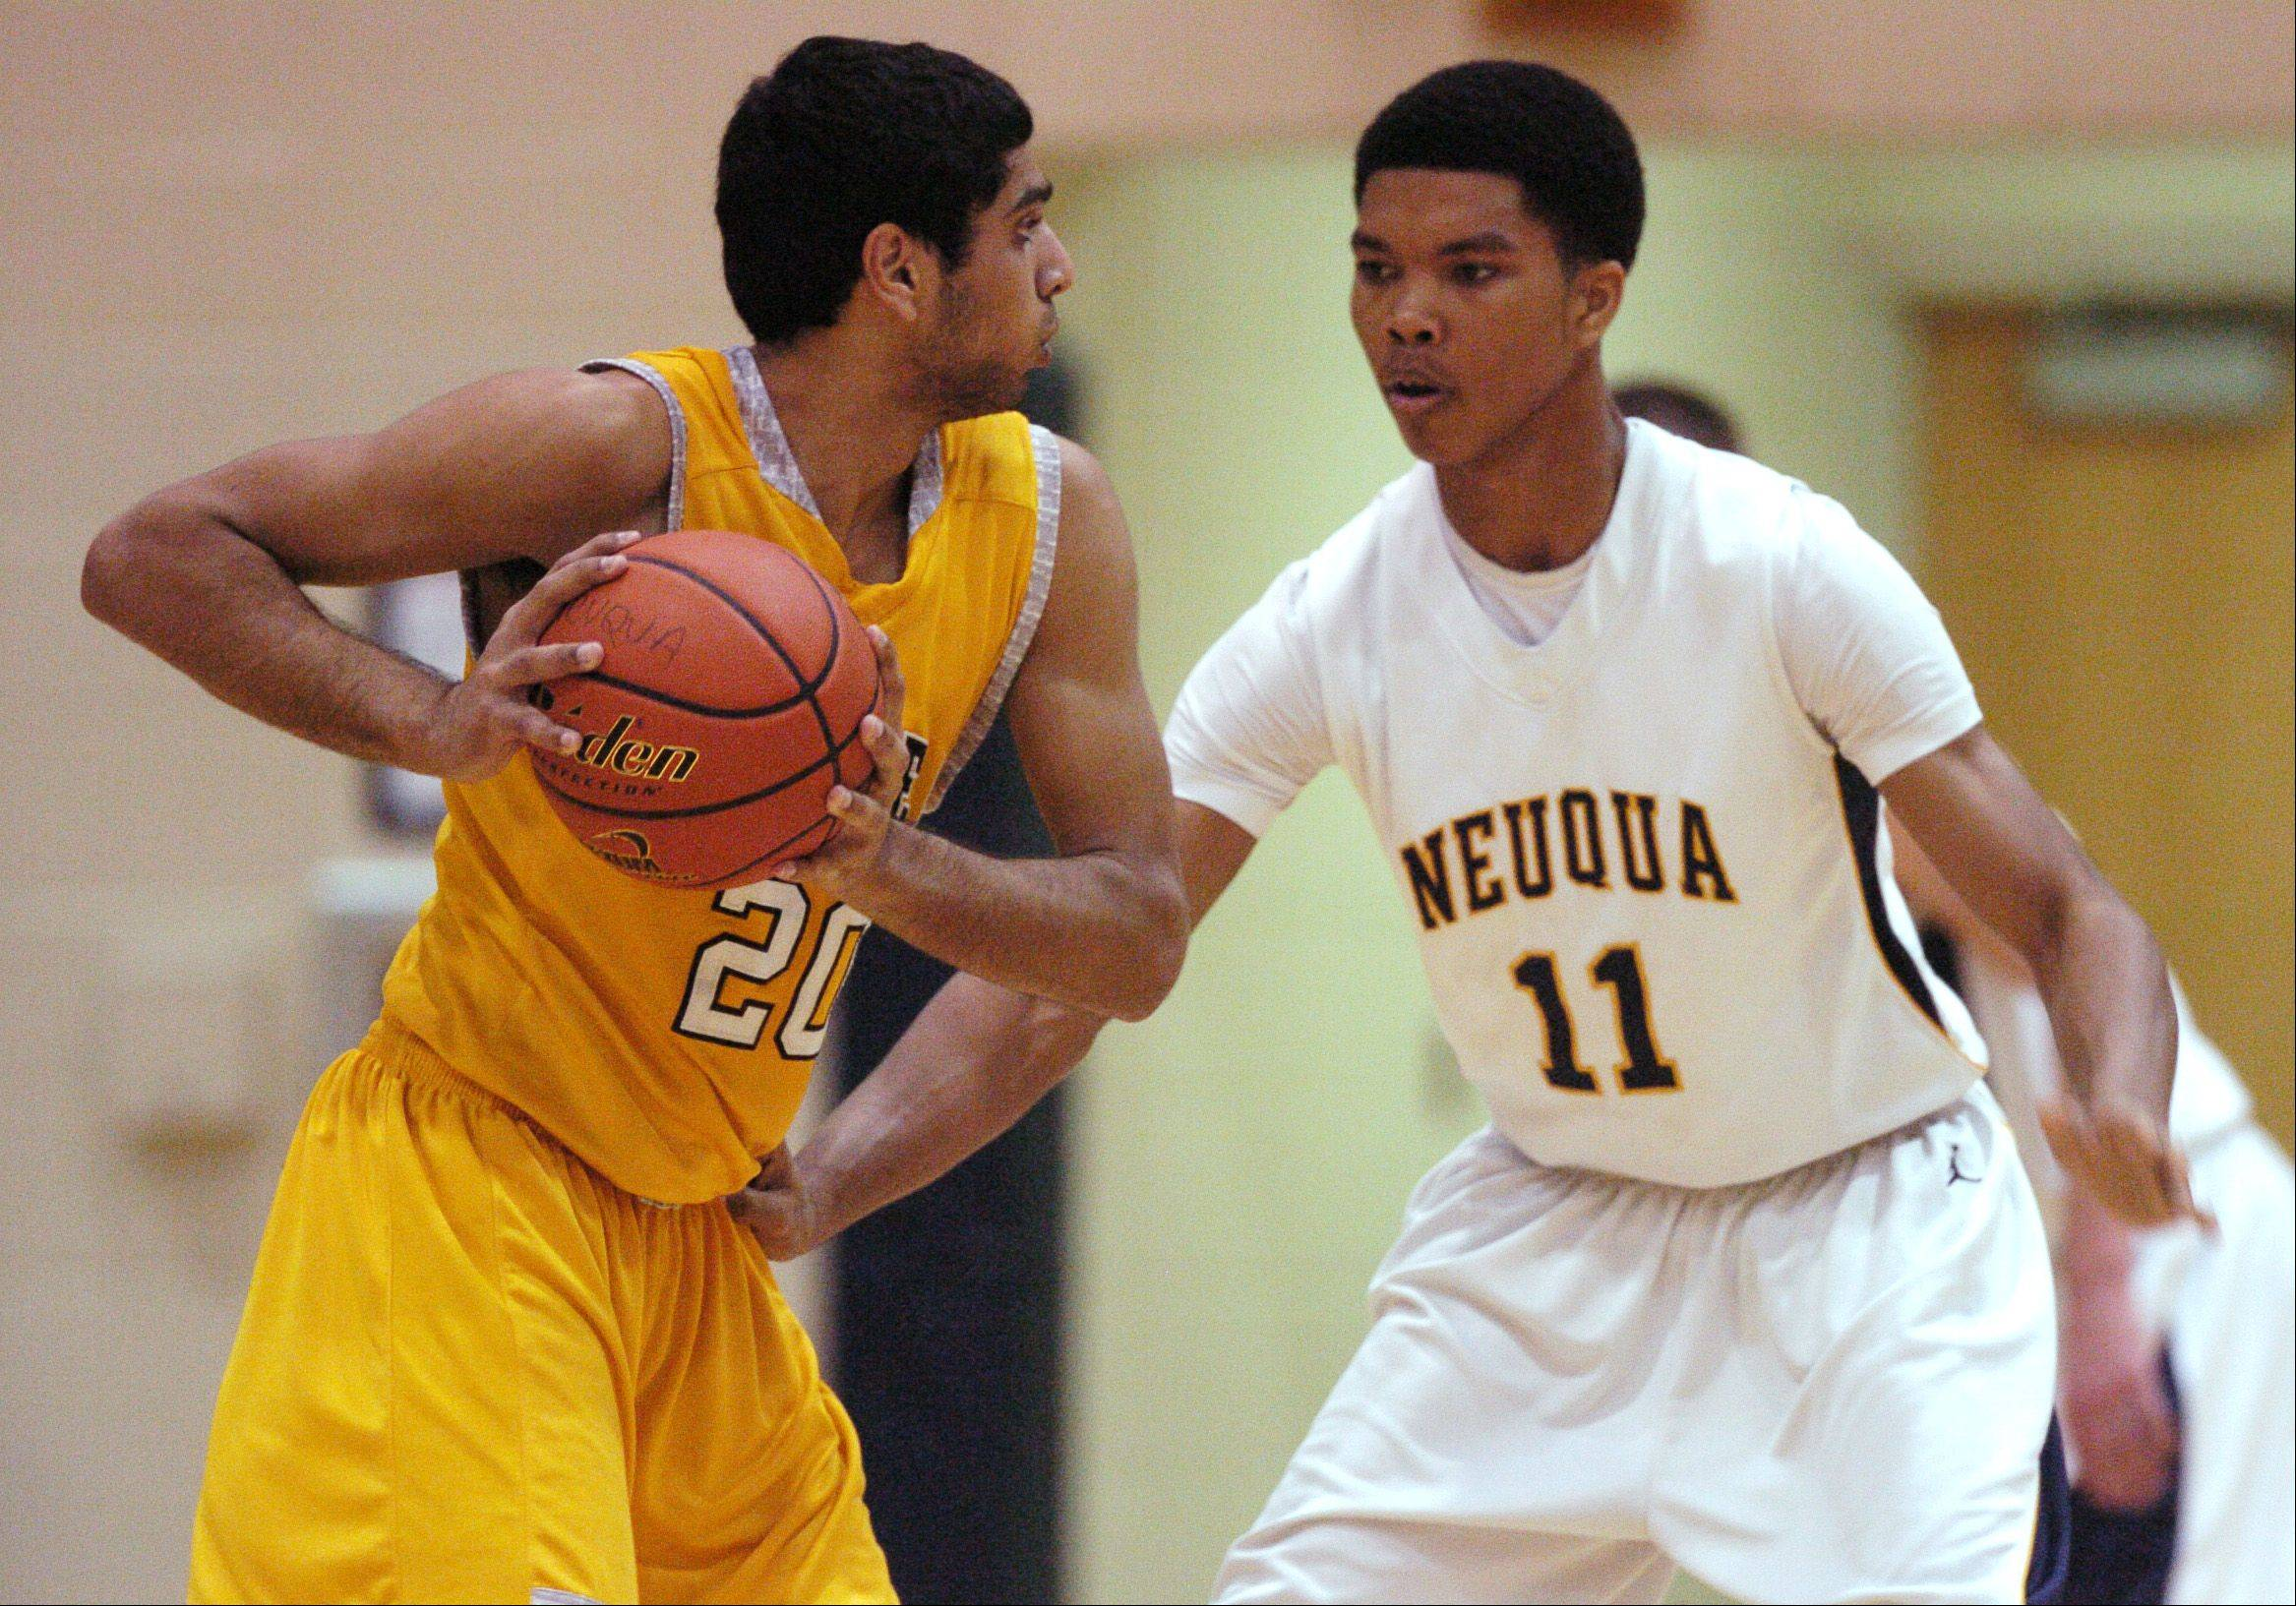 Vin Patel of Metea Valley looks to pass around Zach Pugh of Neuqua Valley during varsity boys basketball Thursday at Neuqua Valley.